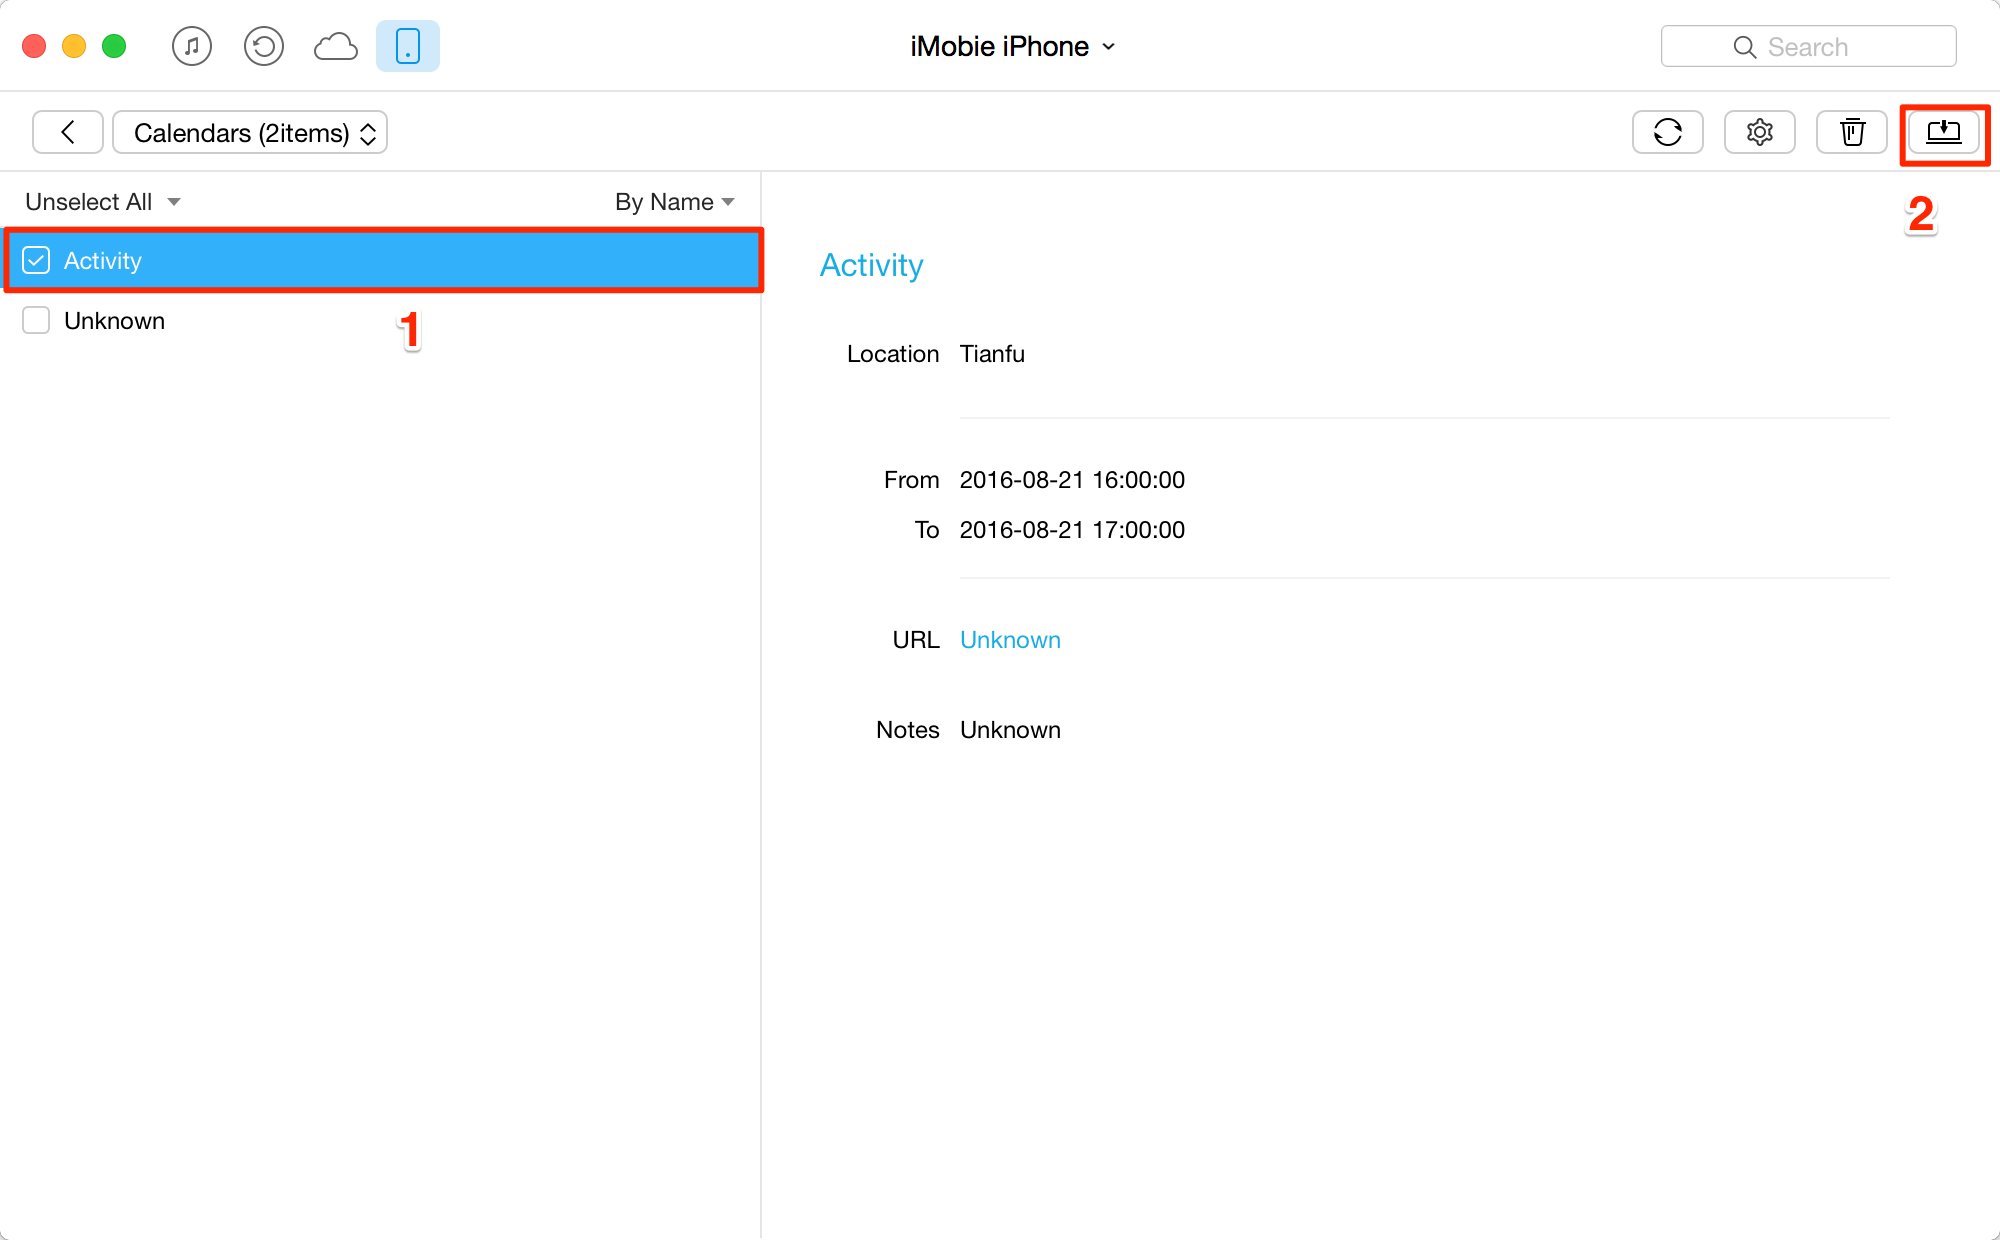 Print Calendar Events from iPhone 6 - Step 4